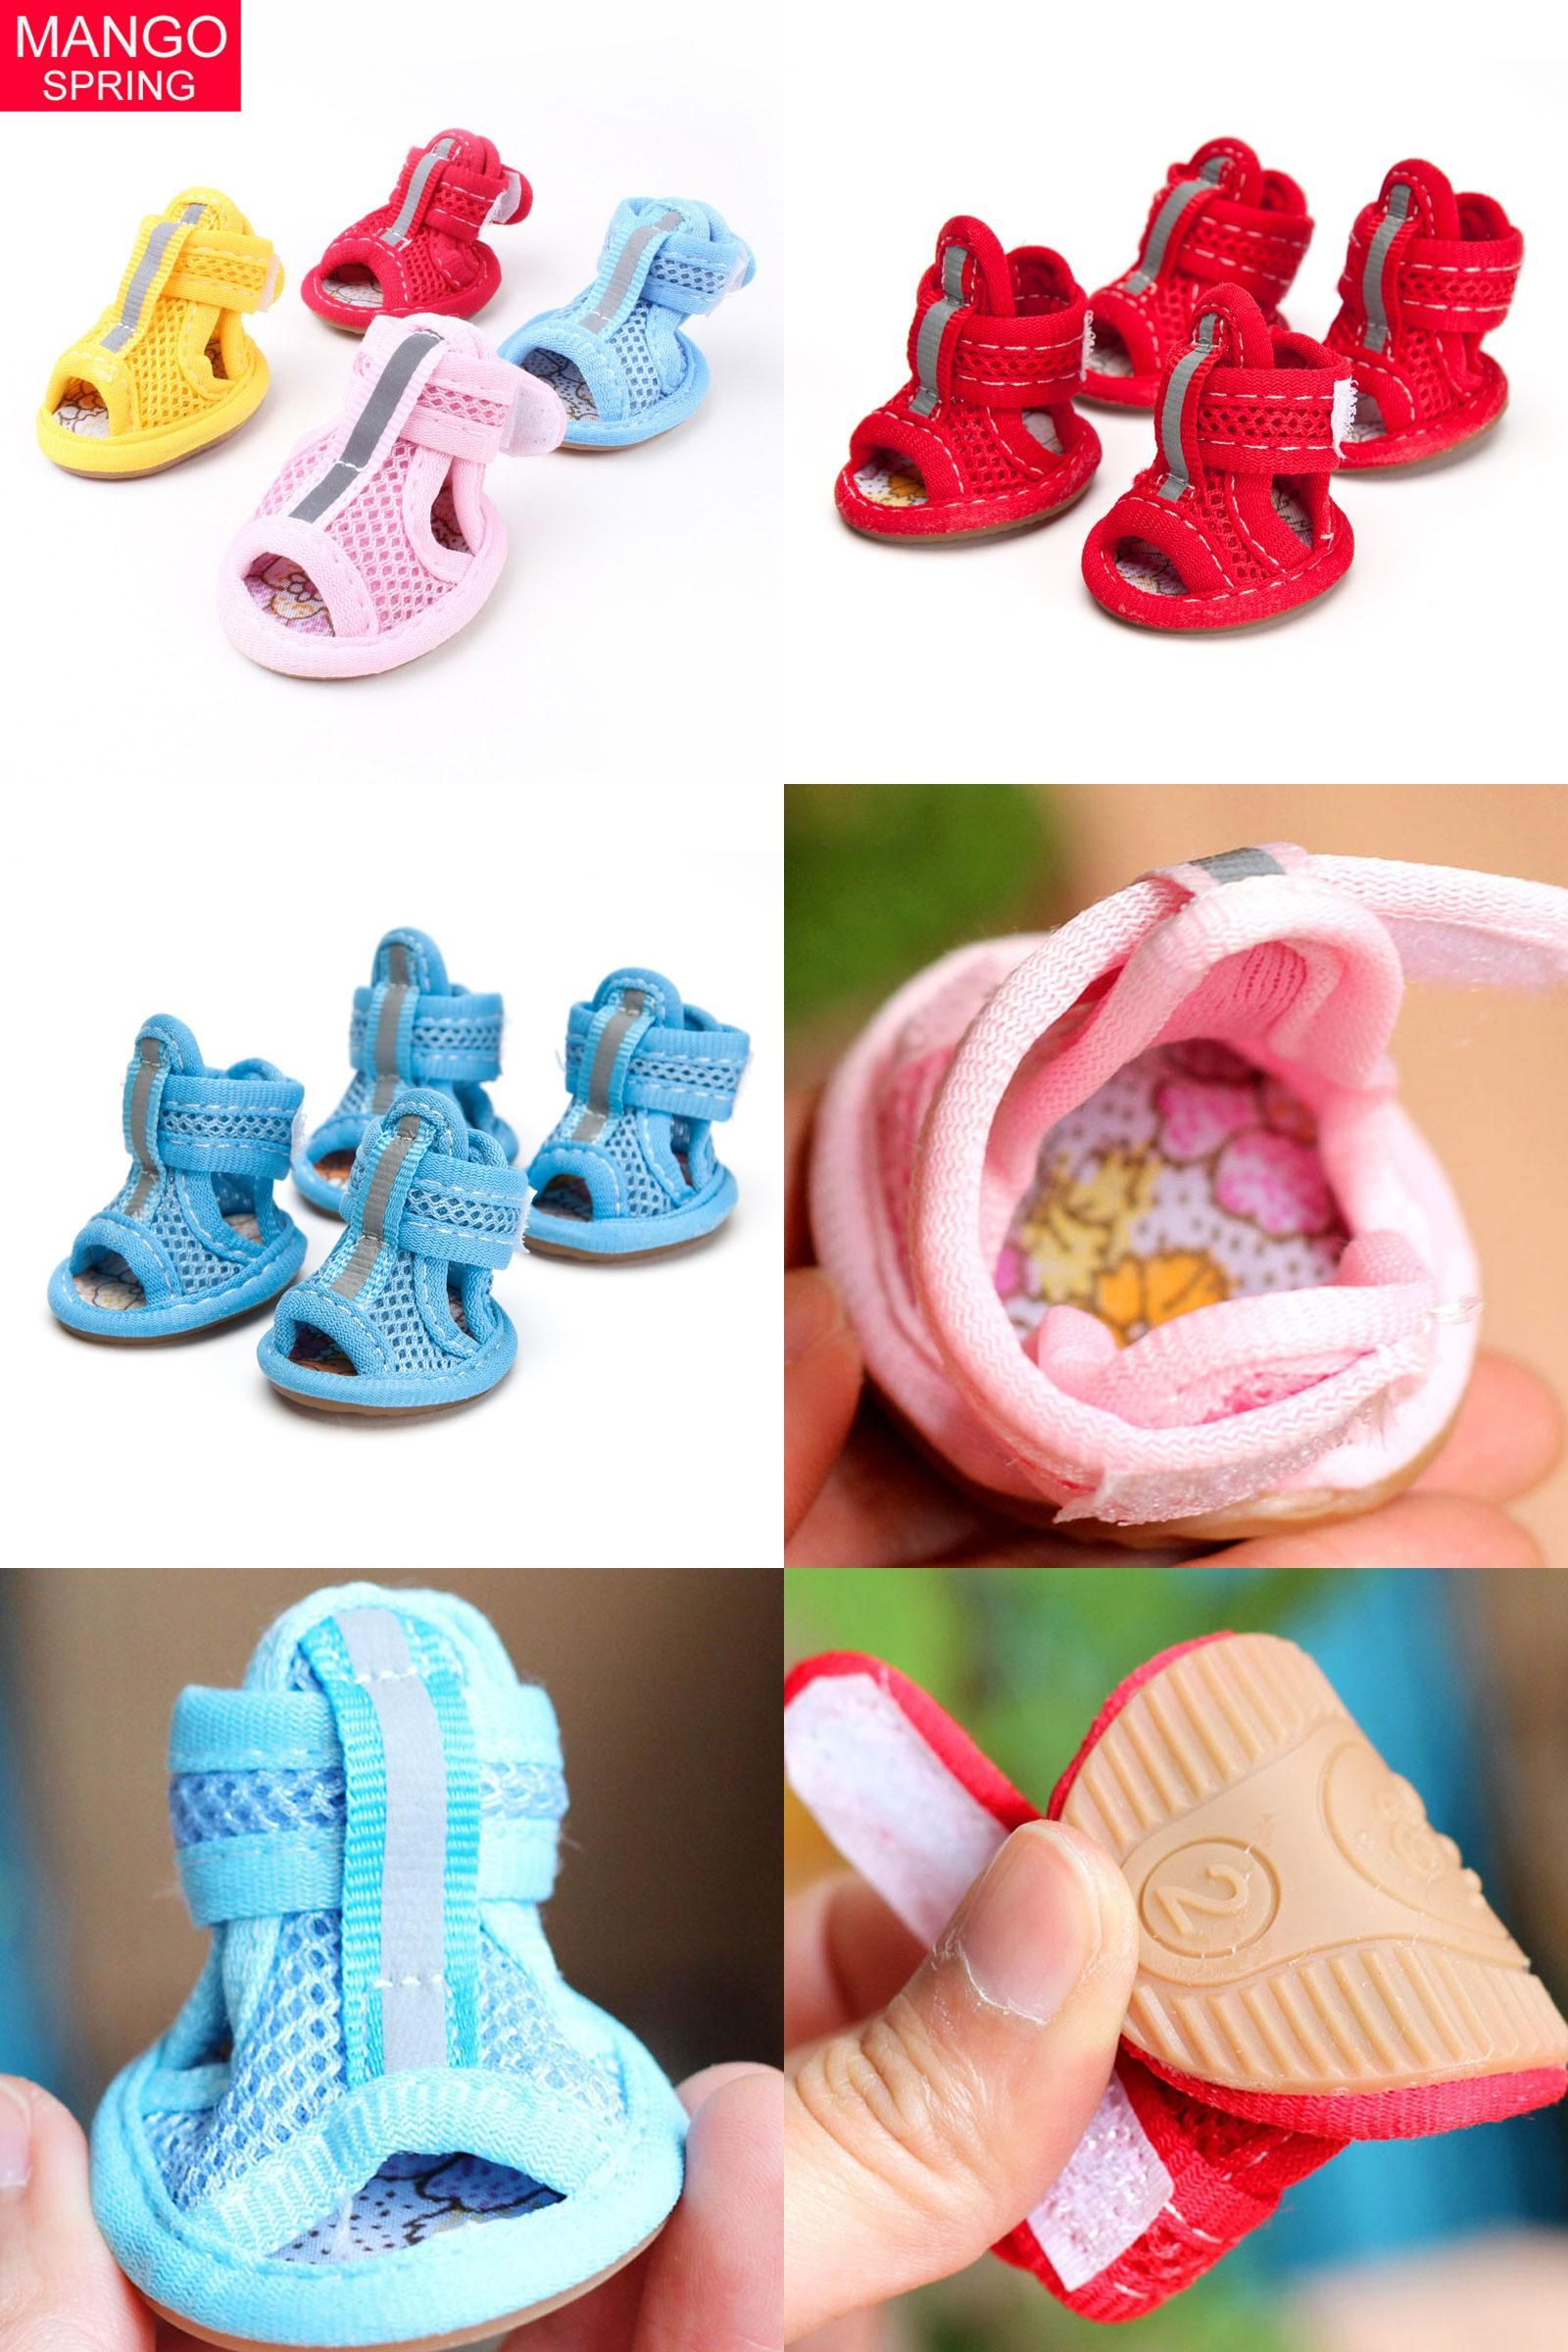 [Visit to Buy] 4pcs/lot Hot Sale Casual Anti-Slip Small Dog Shoes Cute Pet Shoes Shoe Spring Summer Breathable Soft Mesh Sandals Candy Colors #Advertisement